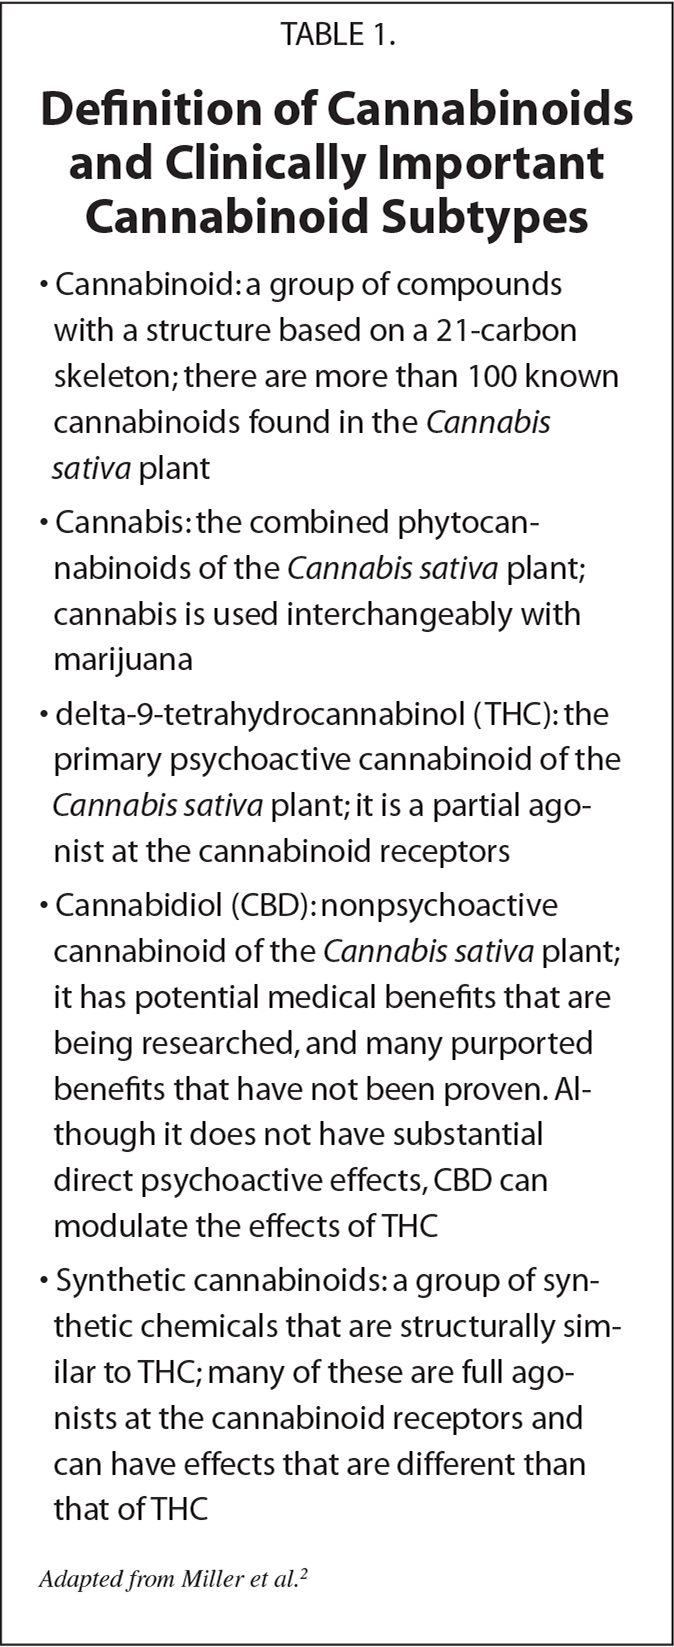 Definition of Cannabinoids and Clinically Important Cannabinoid Subtypes